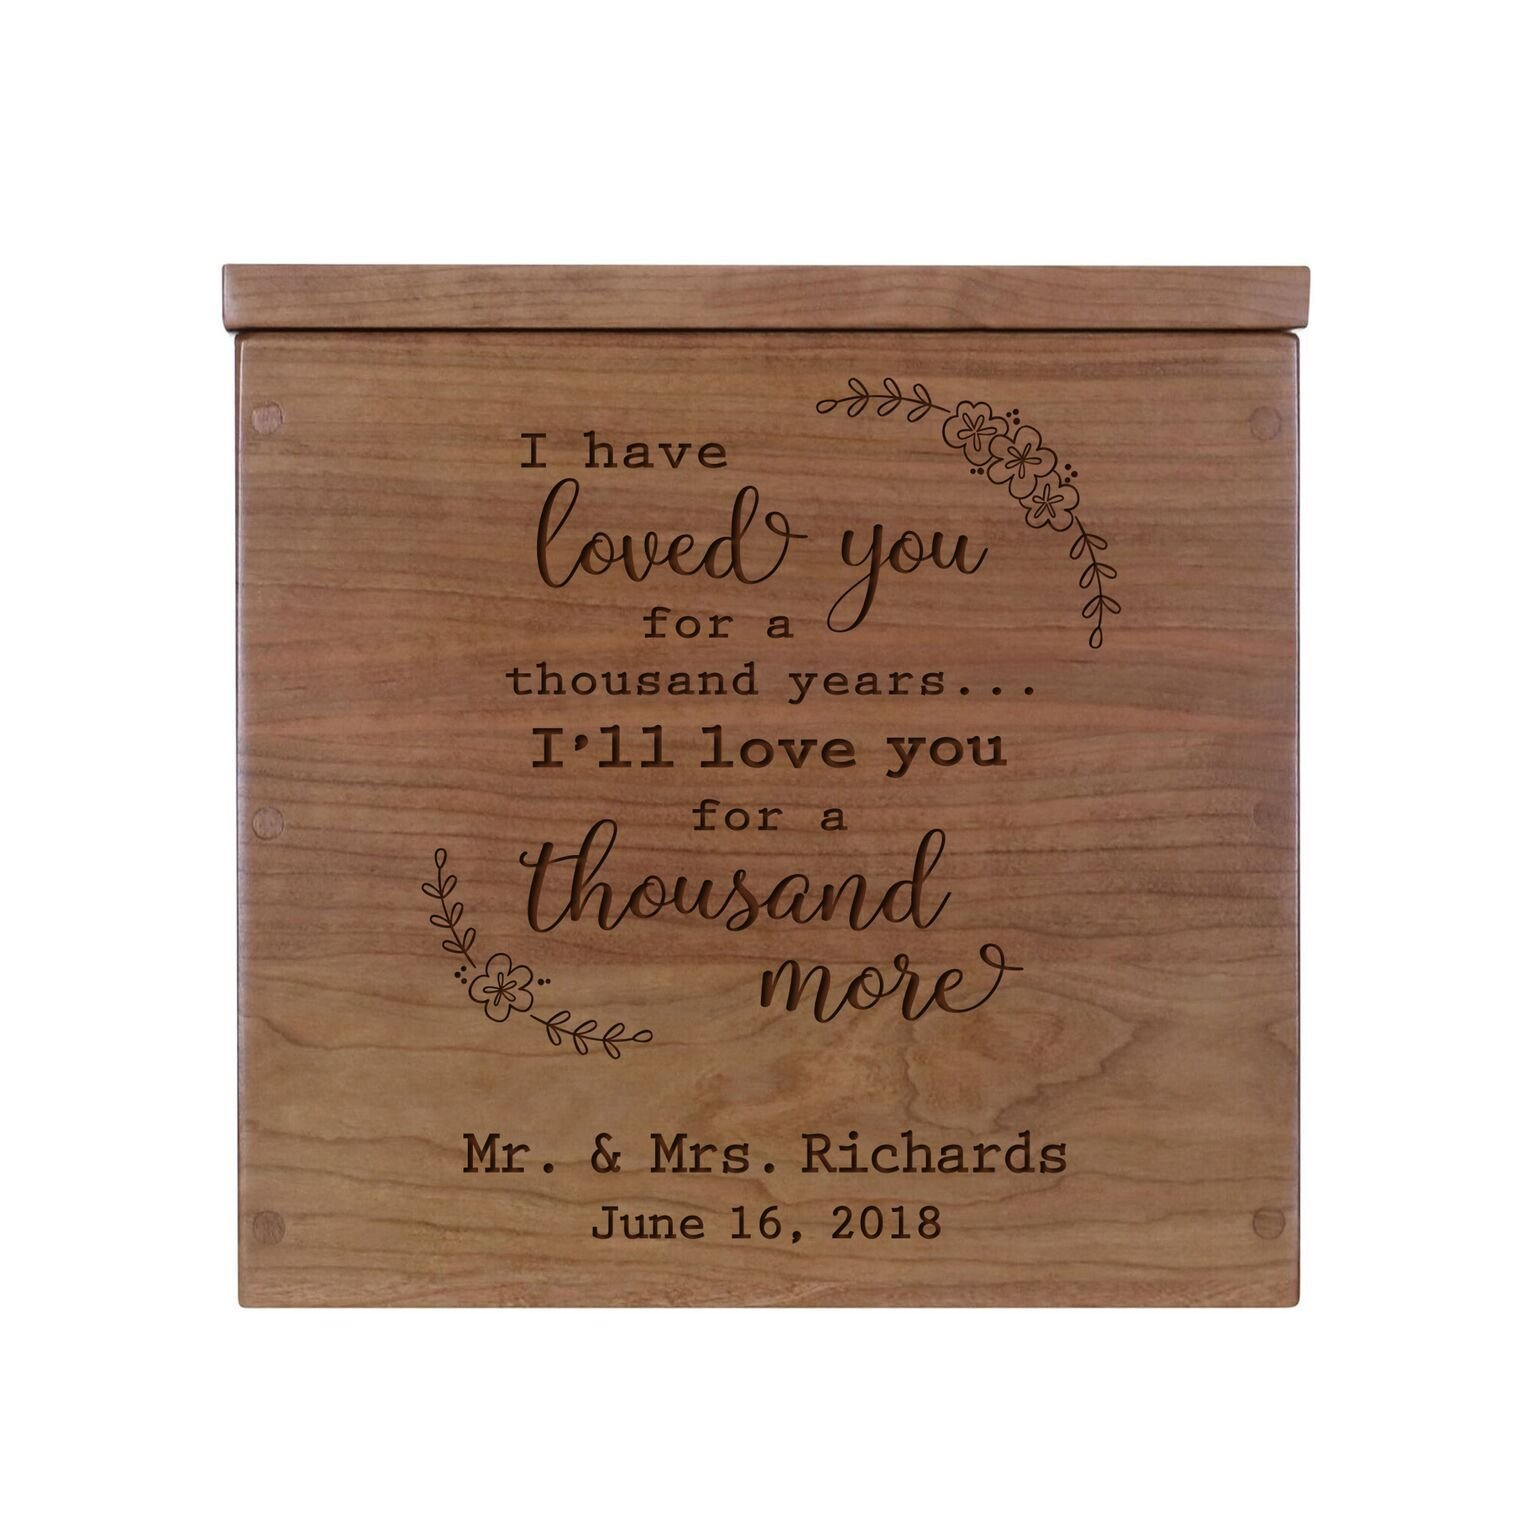 "LifeSong Milestones Personalized I Have Loved You Rustic Wooden Wedding Card Box Custom Card Holder with Lift Top for NewlyWeds Couples Reception 11.5"" L x 12.25"" W (Cherry)"